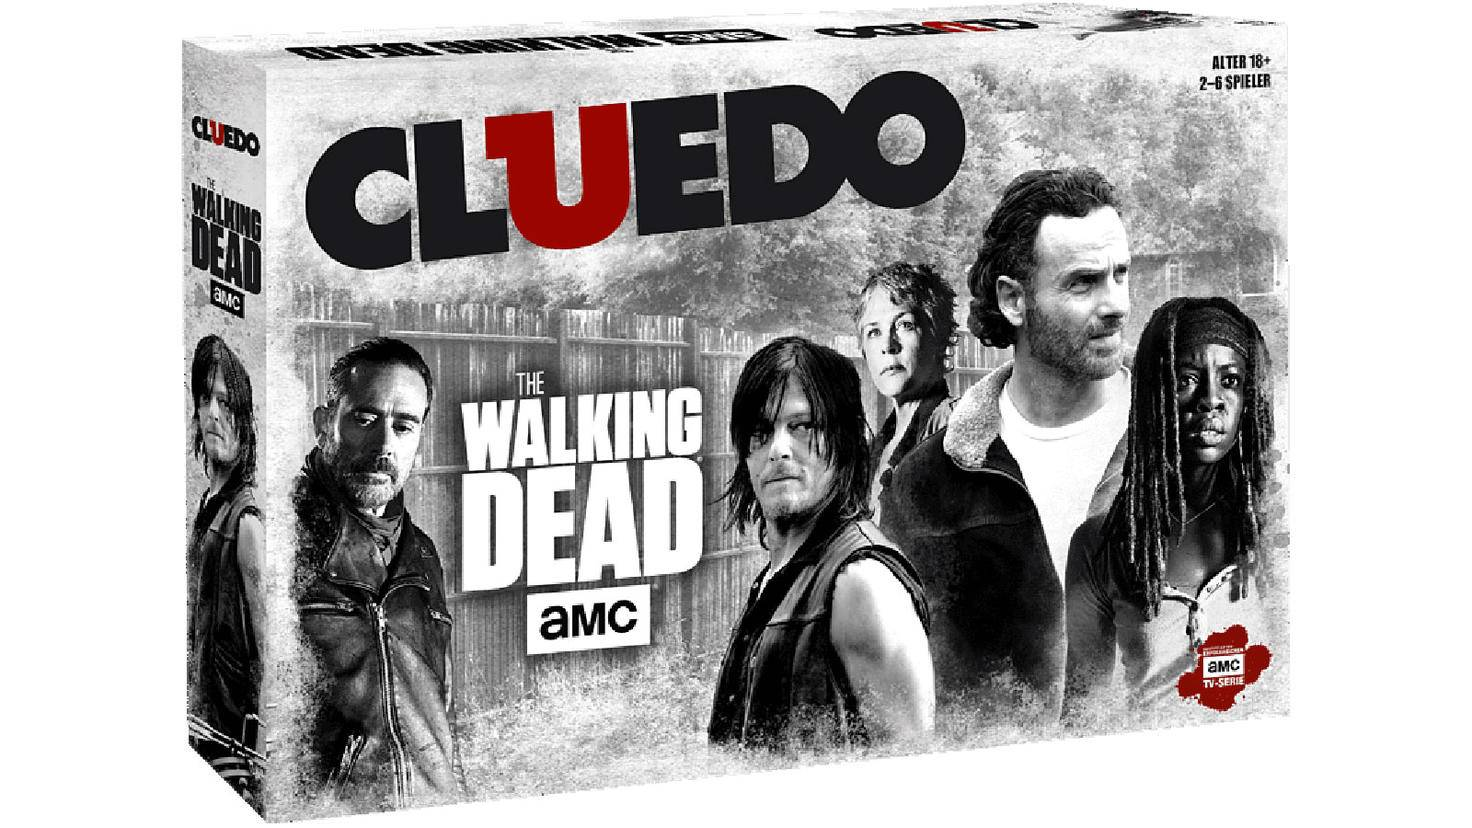 The Walking Dead Cluedo